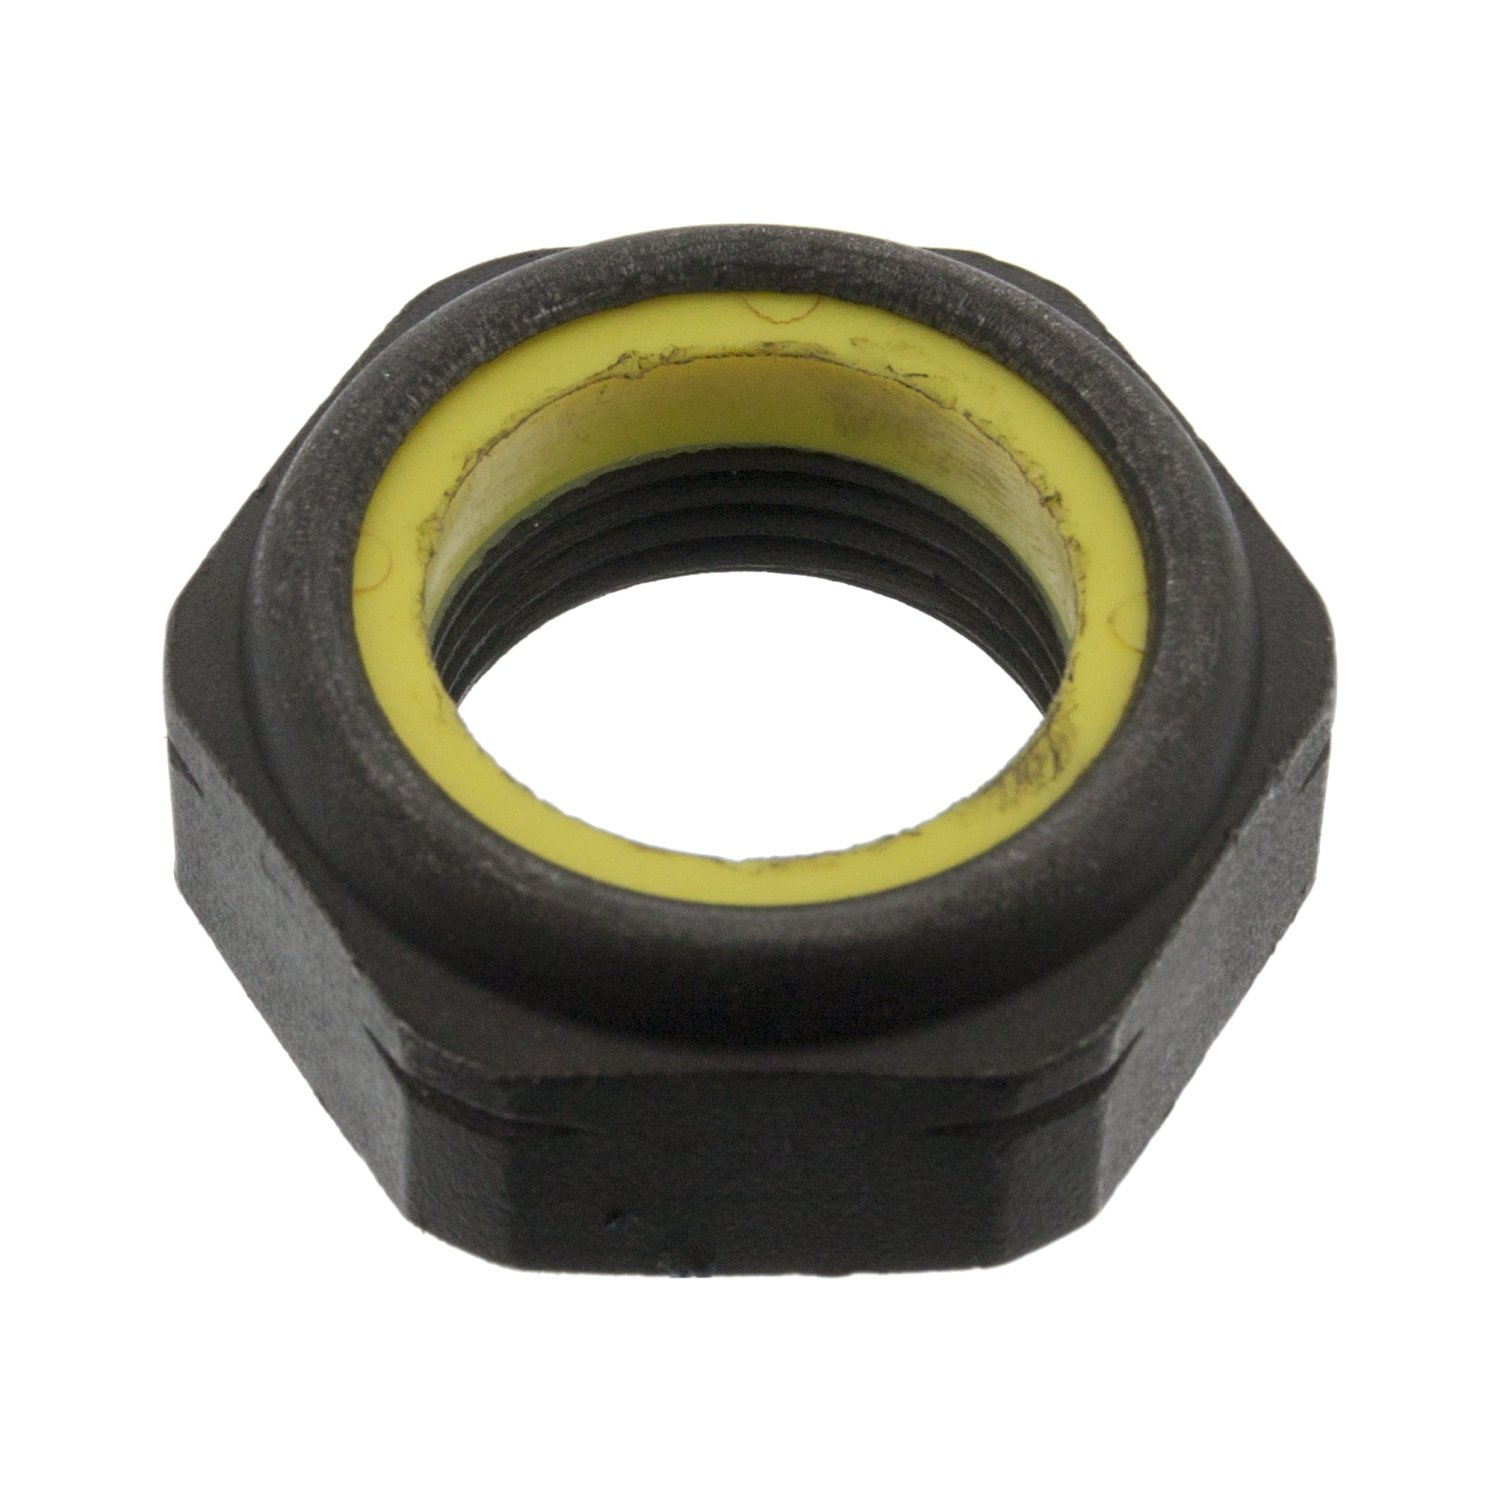 febi bilstein 06243 axle nut - Pack of 1